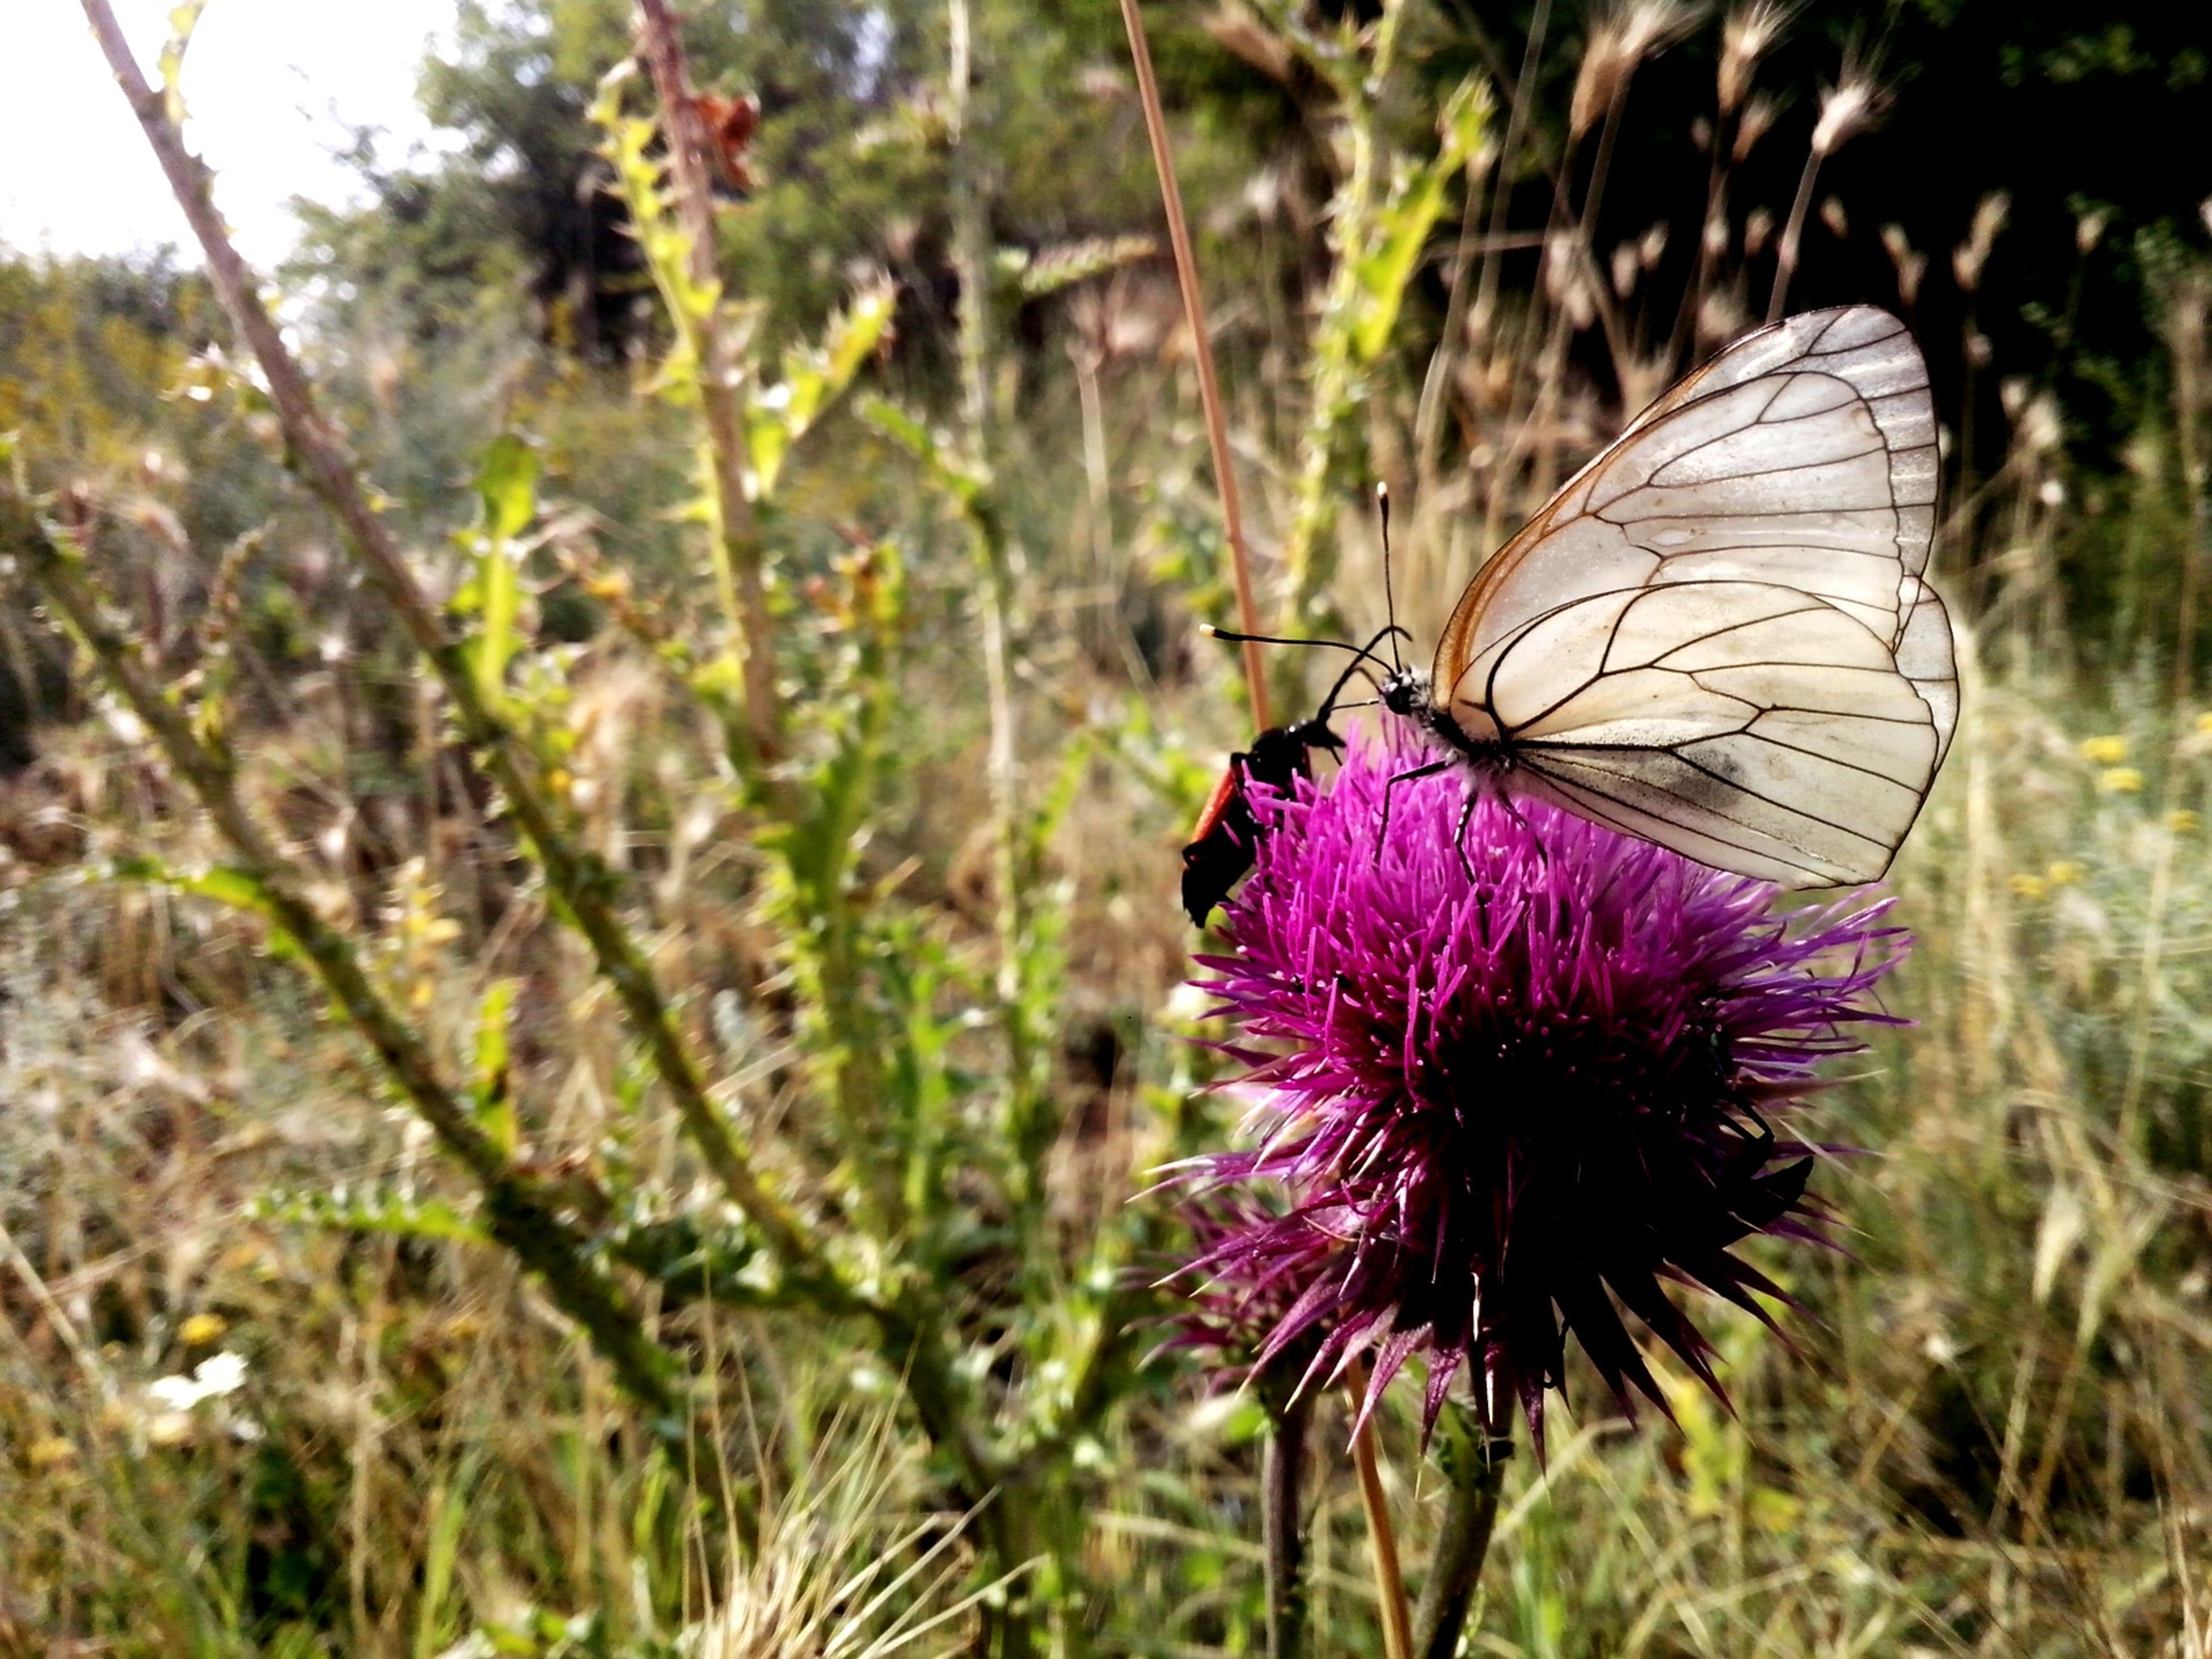 flower, growth, focus on foreground, purple, fragility, plant, close-up, nature, freshness, beauty in nature, pink color, animals in the wild, field, thistle, insect, wildlife, one animal, butterfly - insect, flower head, butterfly